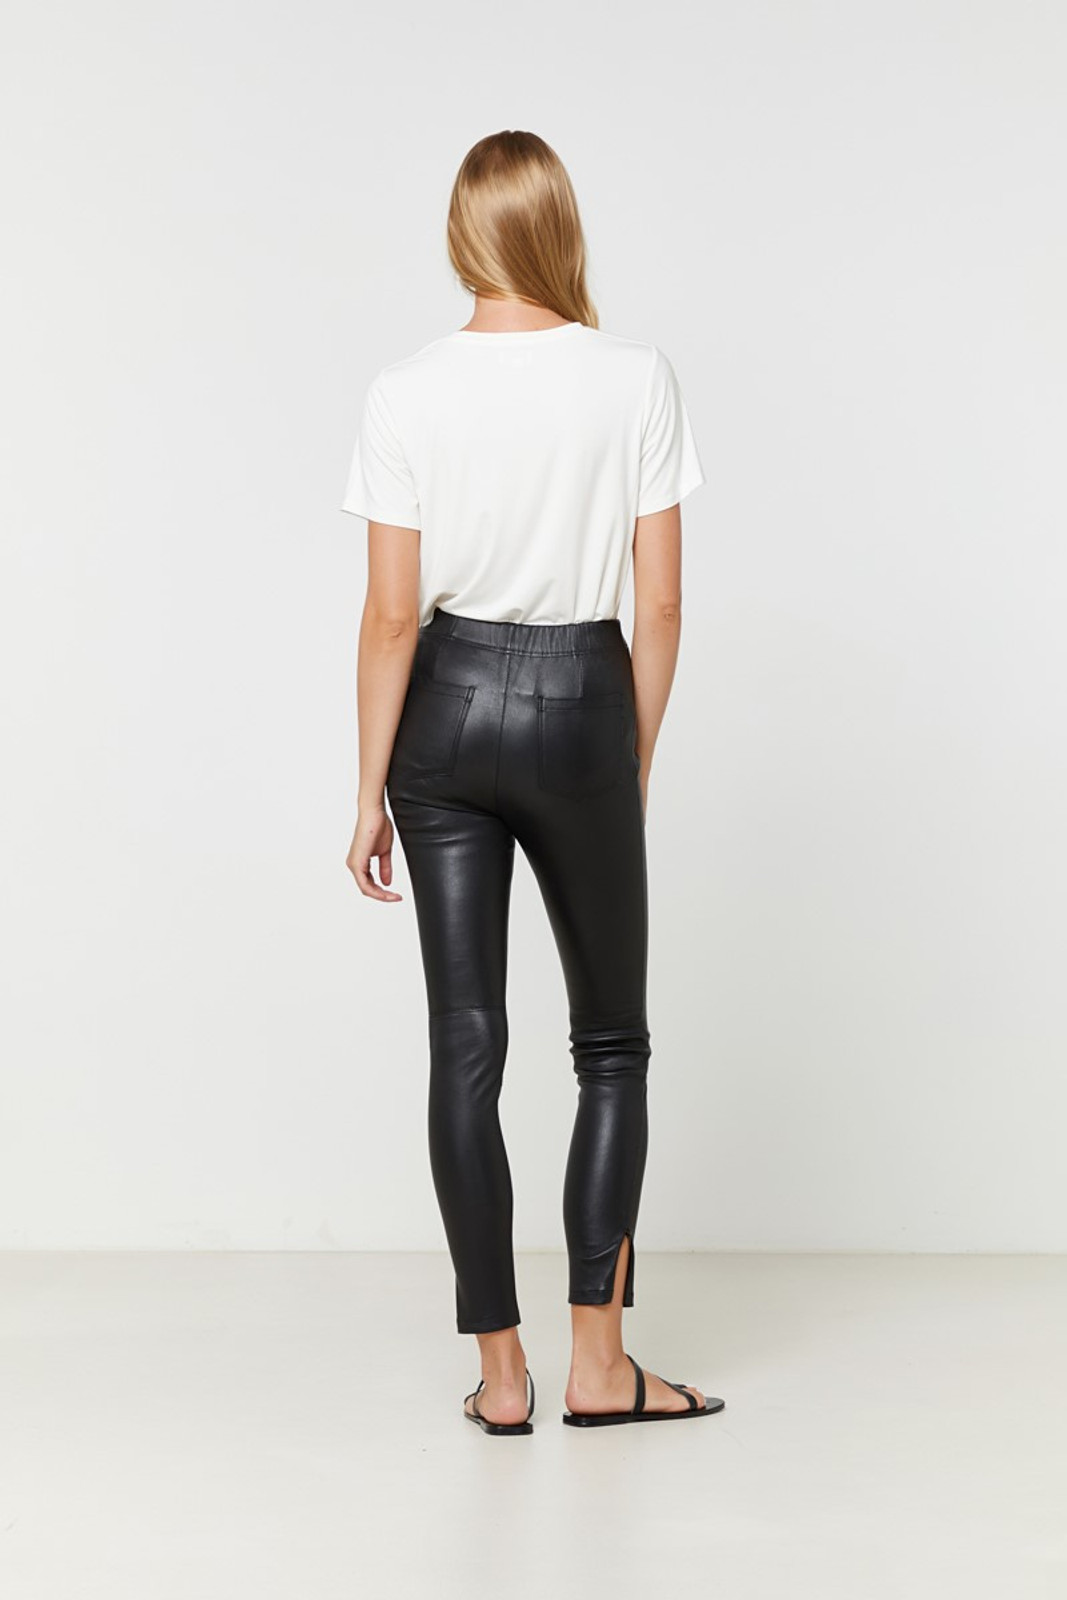 Elka Collective Rosa Leather Pant Black  8